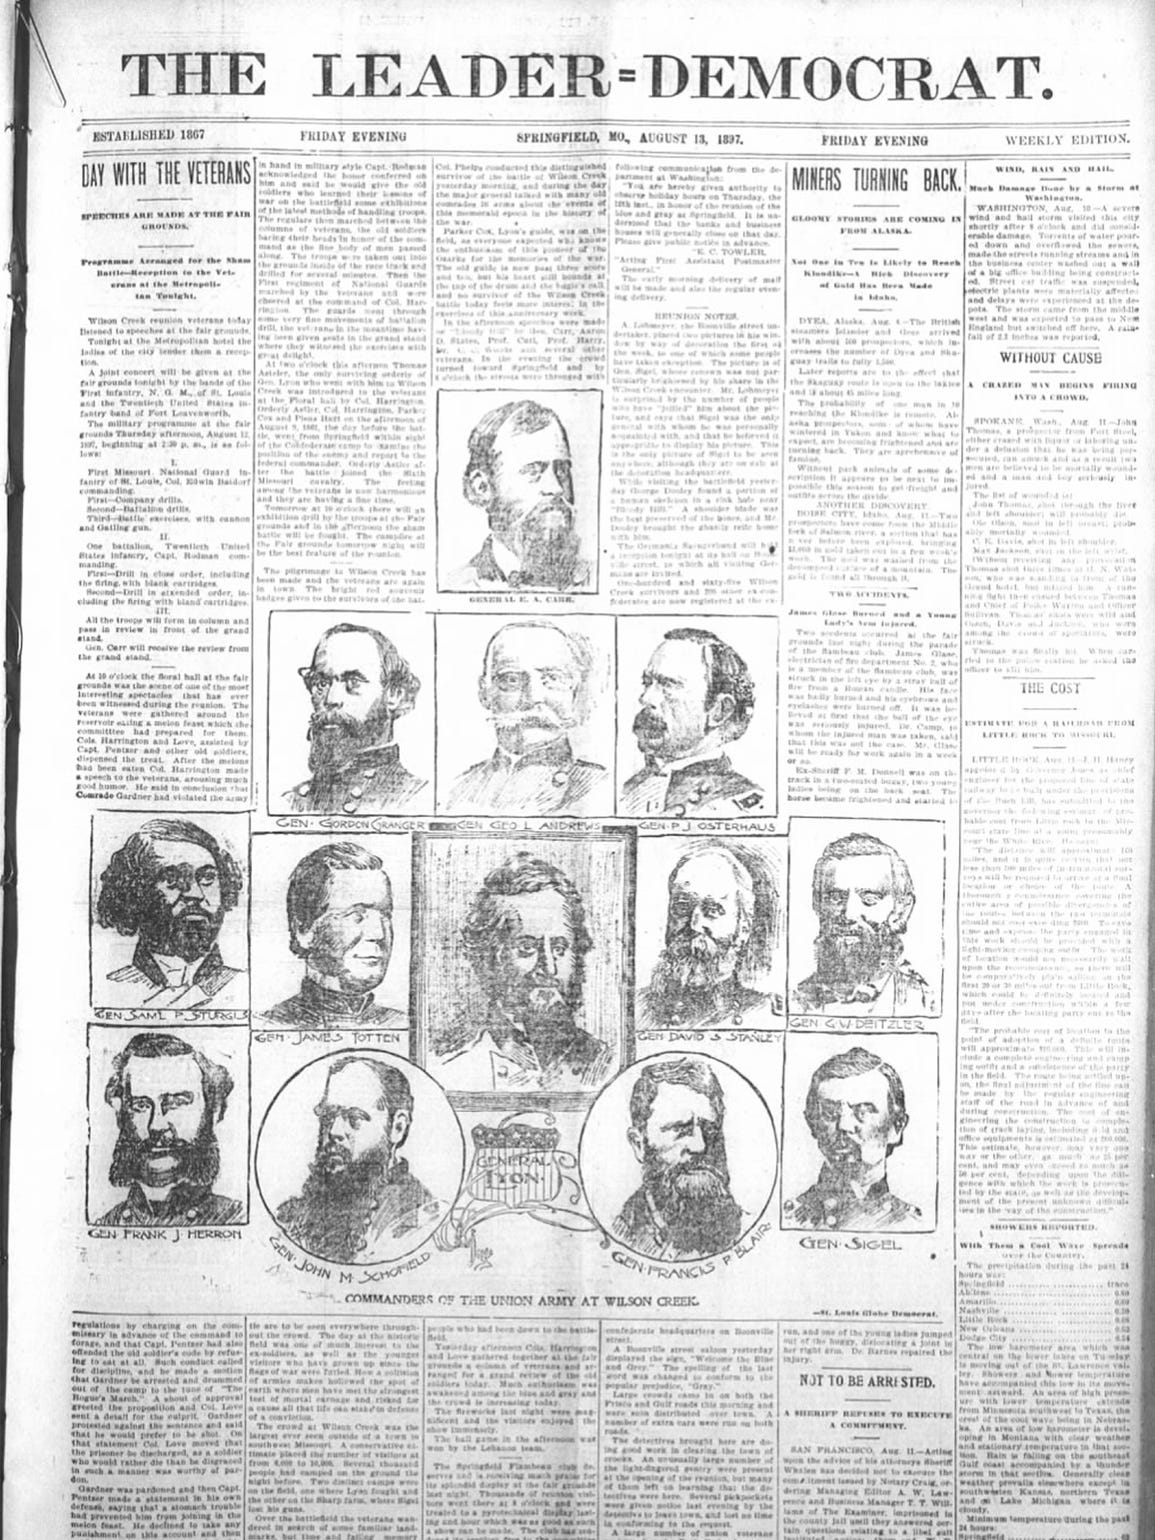 Aug. 13, 1897, edition of the Leader-Democrat.